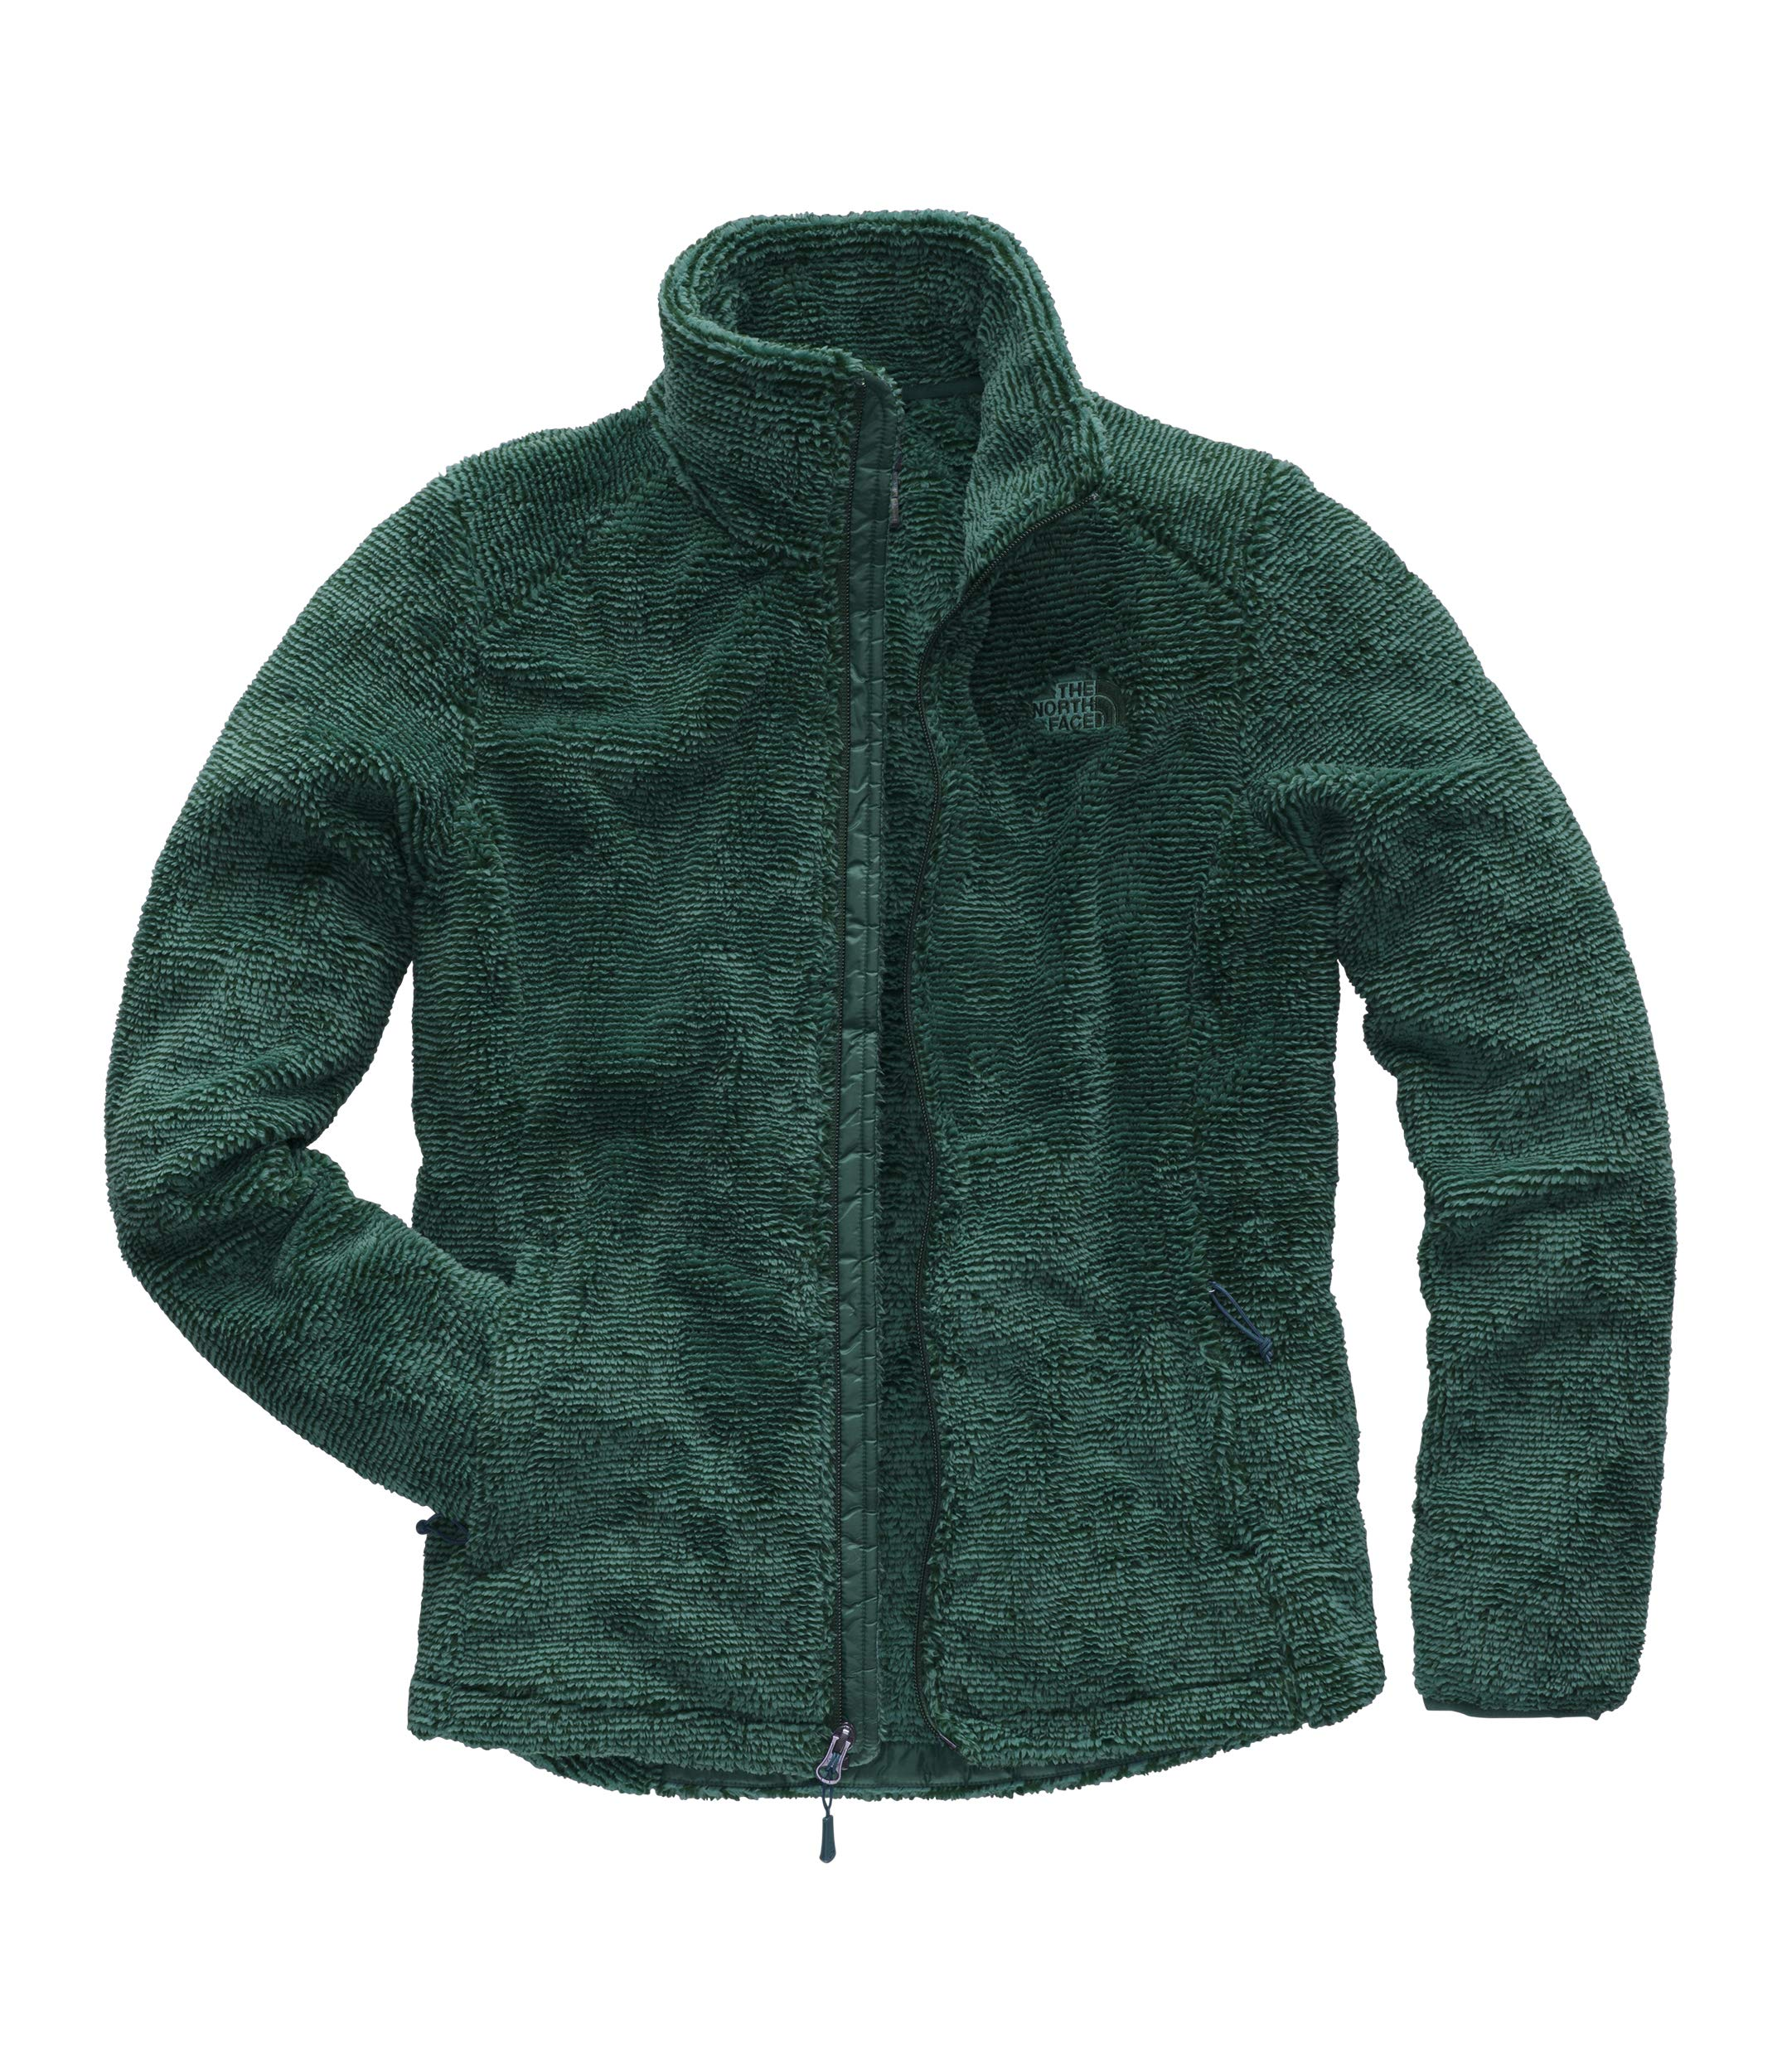 The North Face NF00C782 Women's Osito 2 Jacket, Botanical Garden Green - S by The North Face